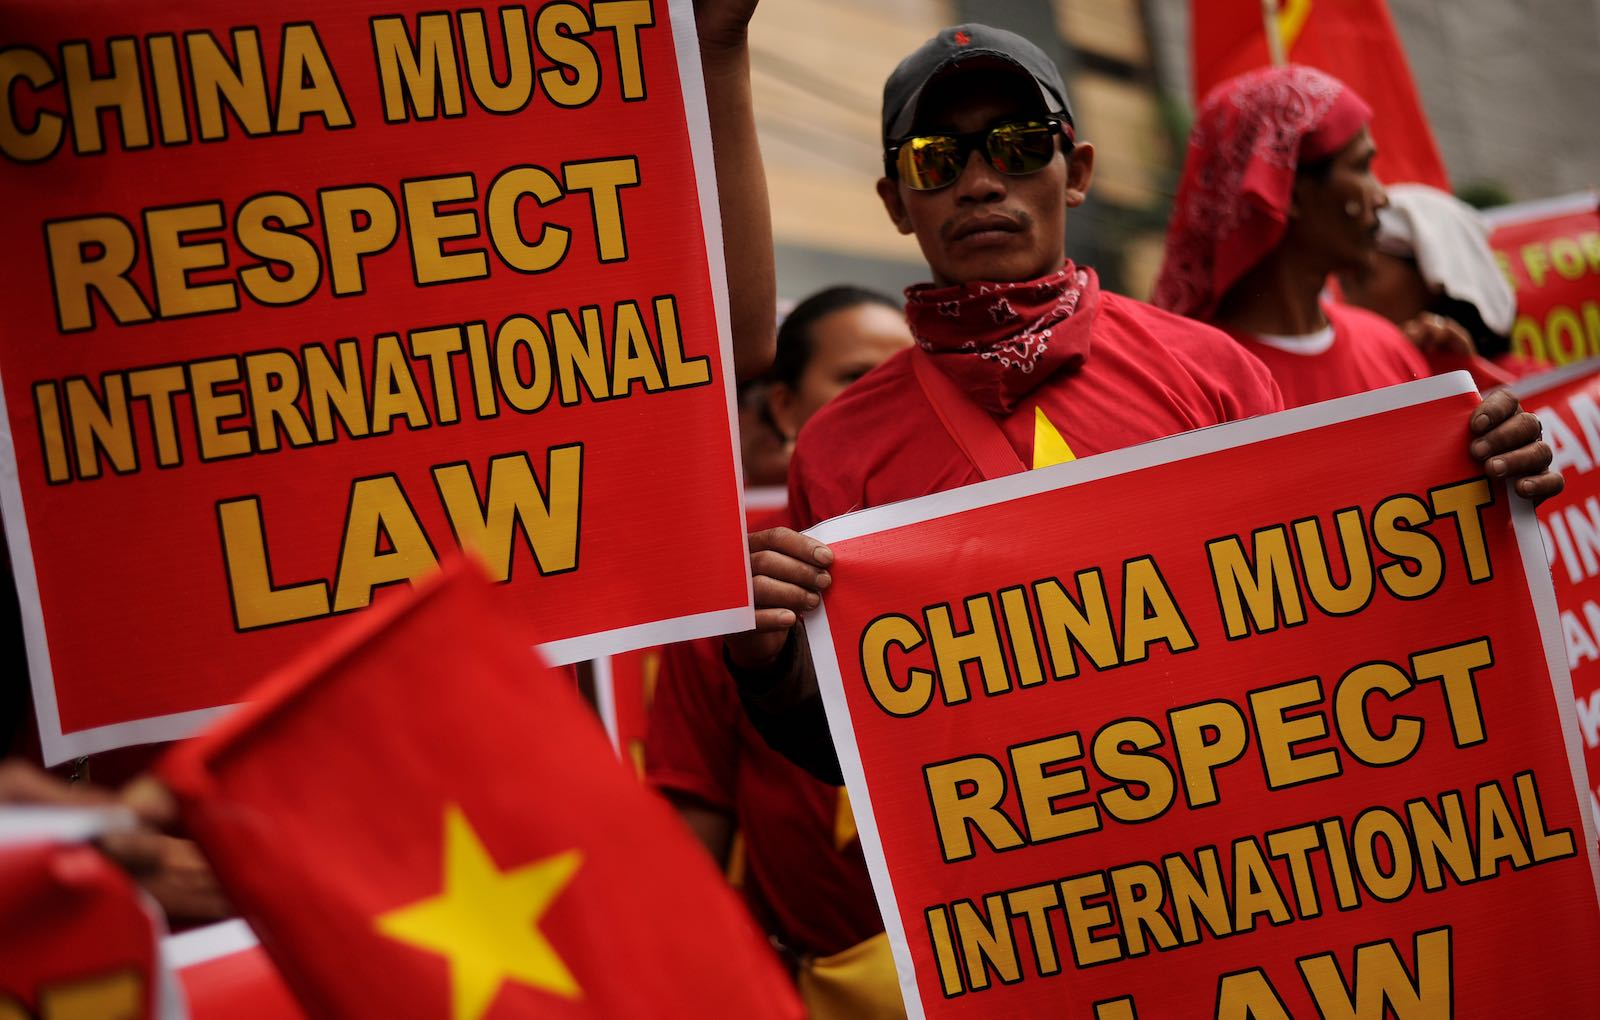 Earlier protests against China's bullying have been ignored (Photo: Noel Celis via Getty)